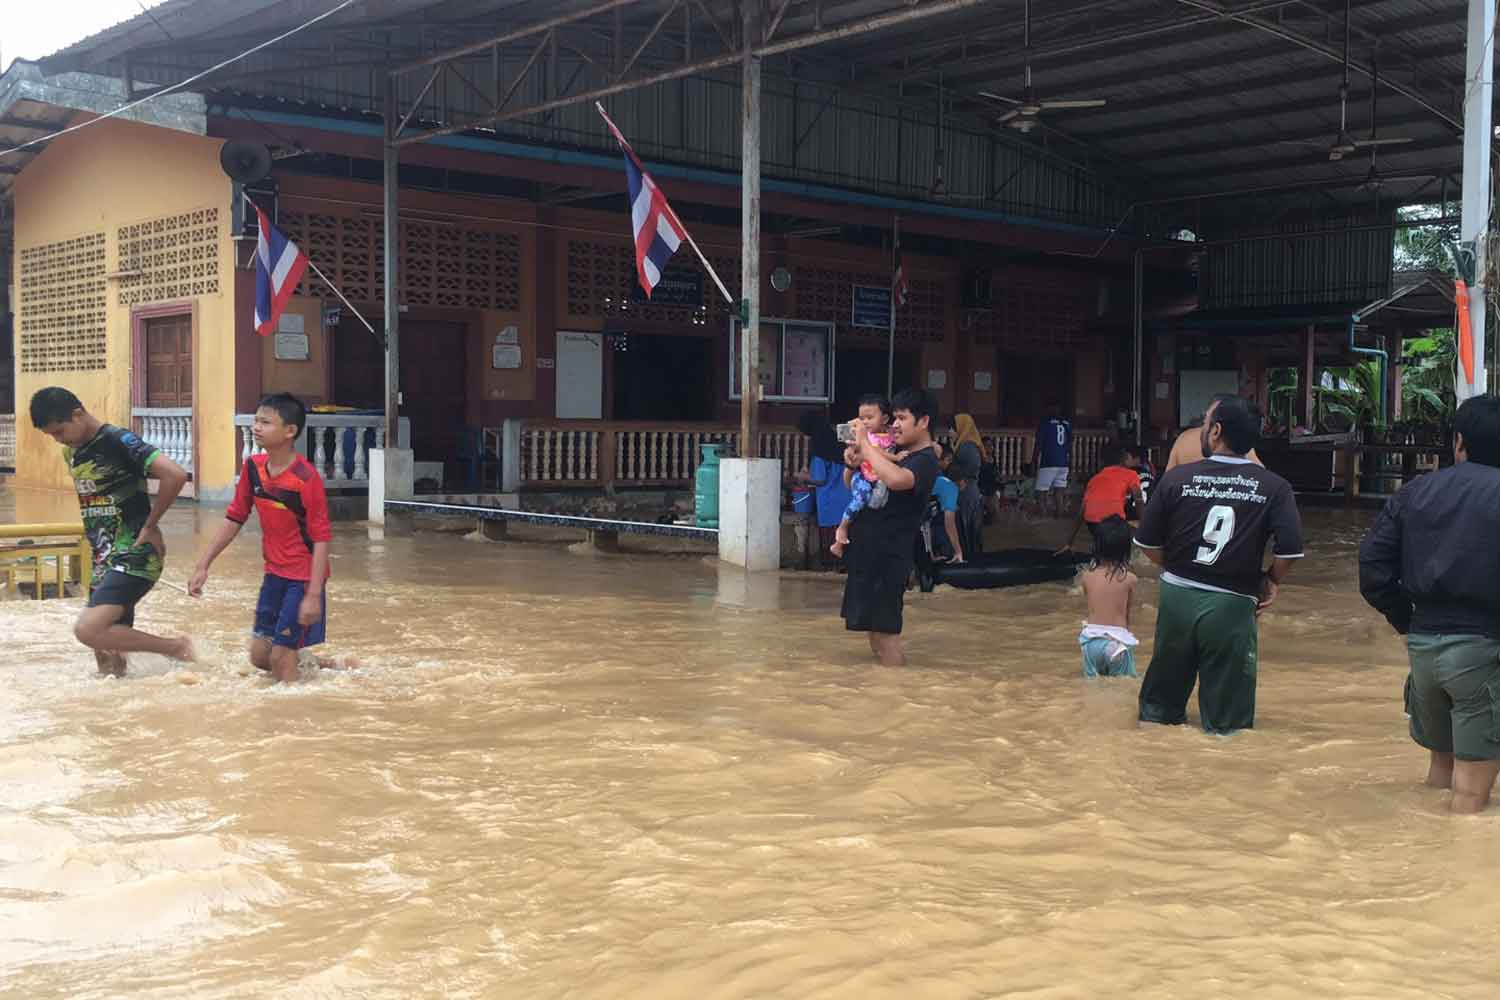 Nearly the entirety of Nam Lat village in Sadao district, Songkhla, is under water after being hit by a flash flood. (Photo by Assawin Pakkawan)